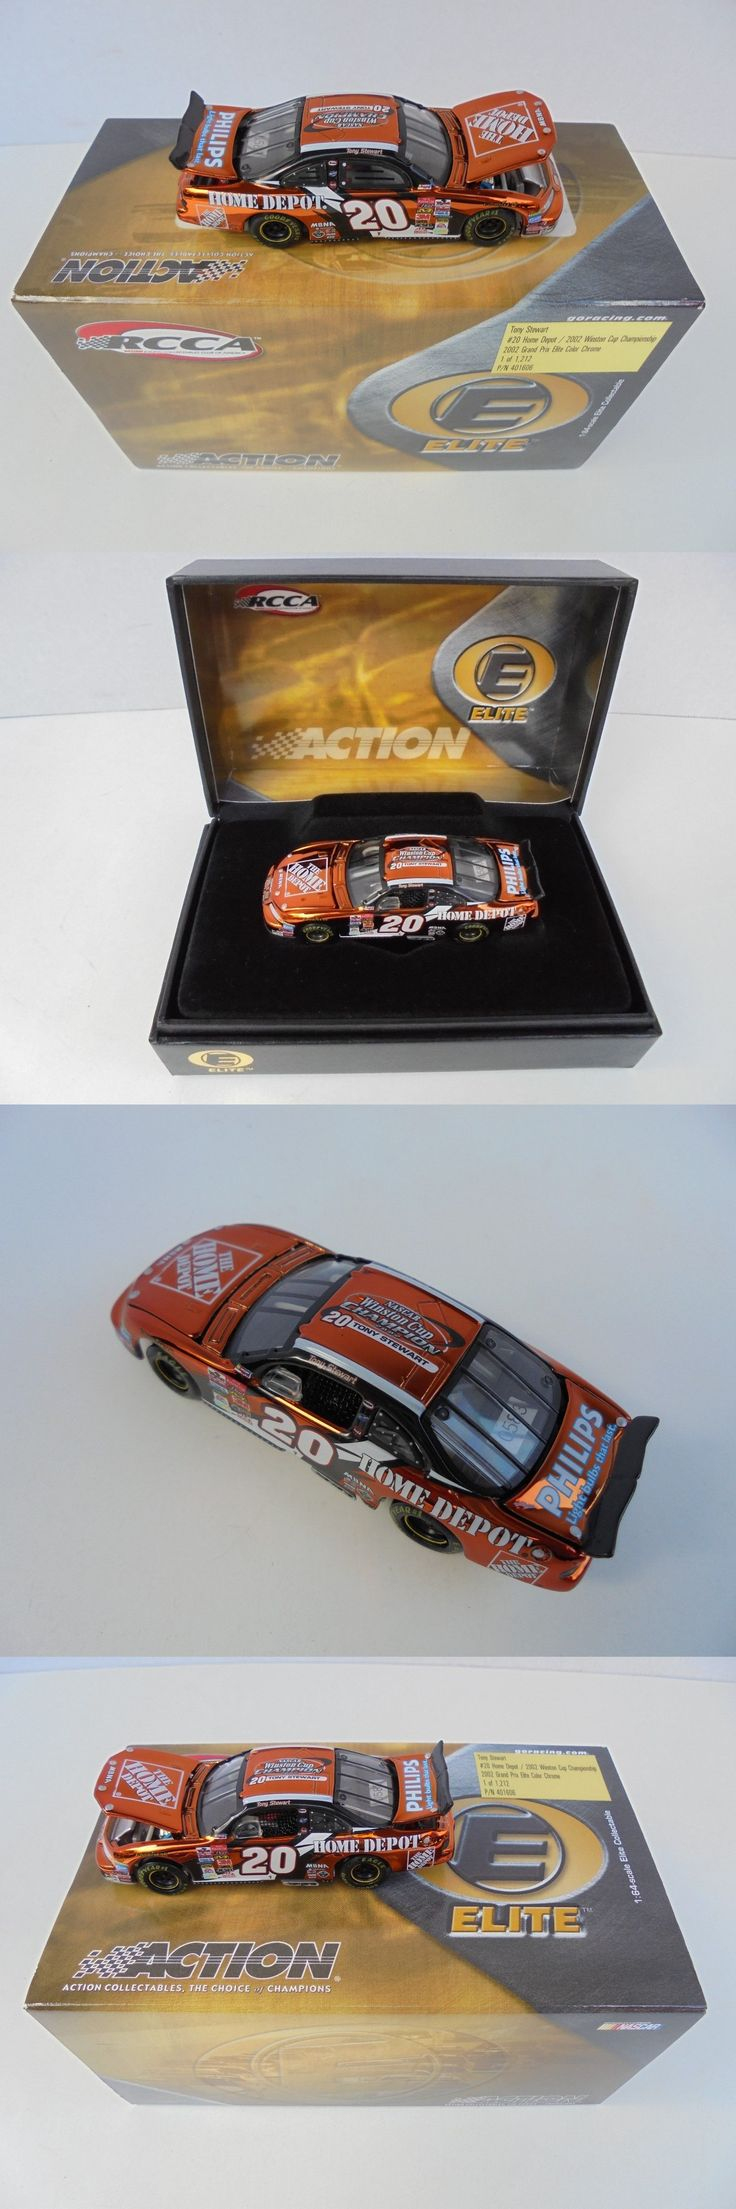 Other Diecast Racing Cars 45354: Tony Stewart #20 Home Depot 2002 Winston Cup Champion Color Chrome Action Elite -> BUY IT NOW ONLY: $45.97 on eBay!